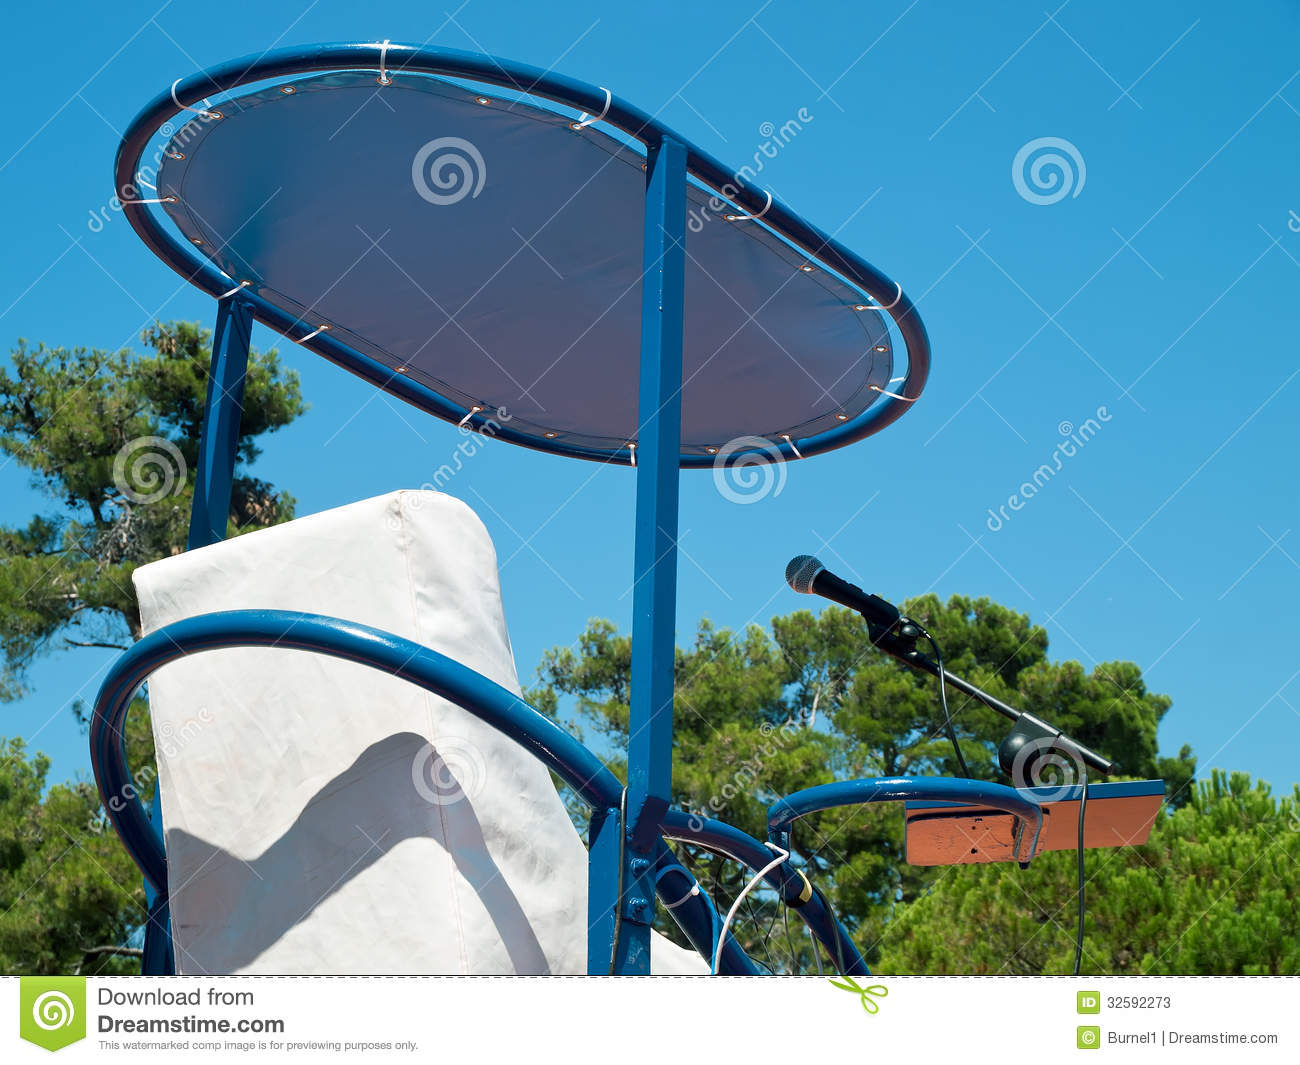 Chaise d 39 arbitre image stock image du p le place tennis for Chaise arbitre tennis occasion